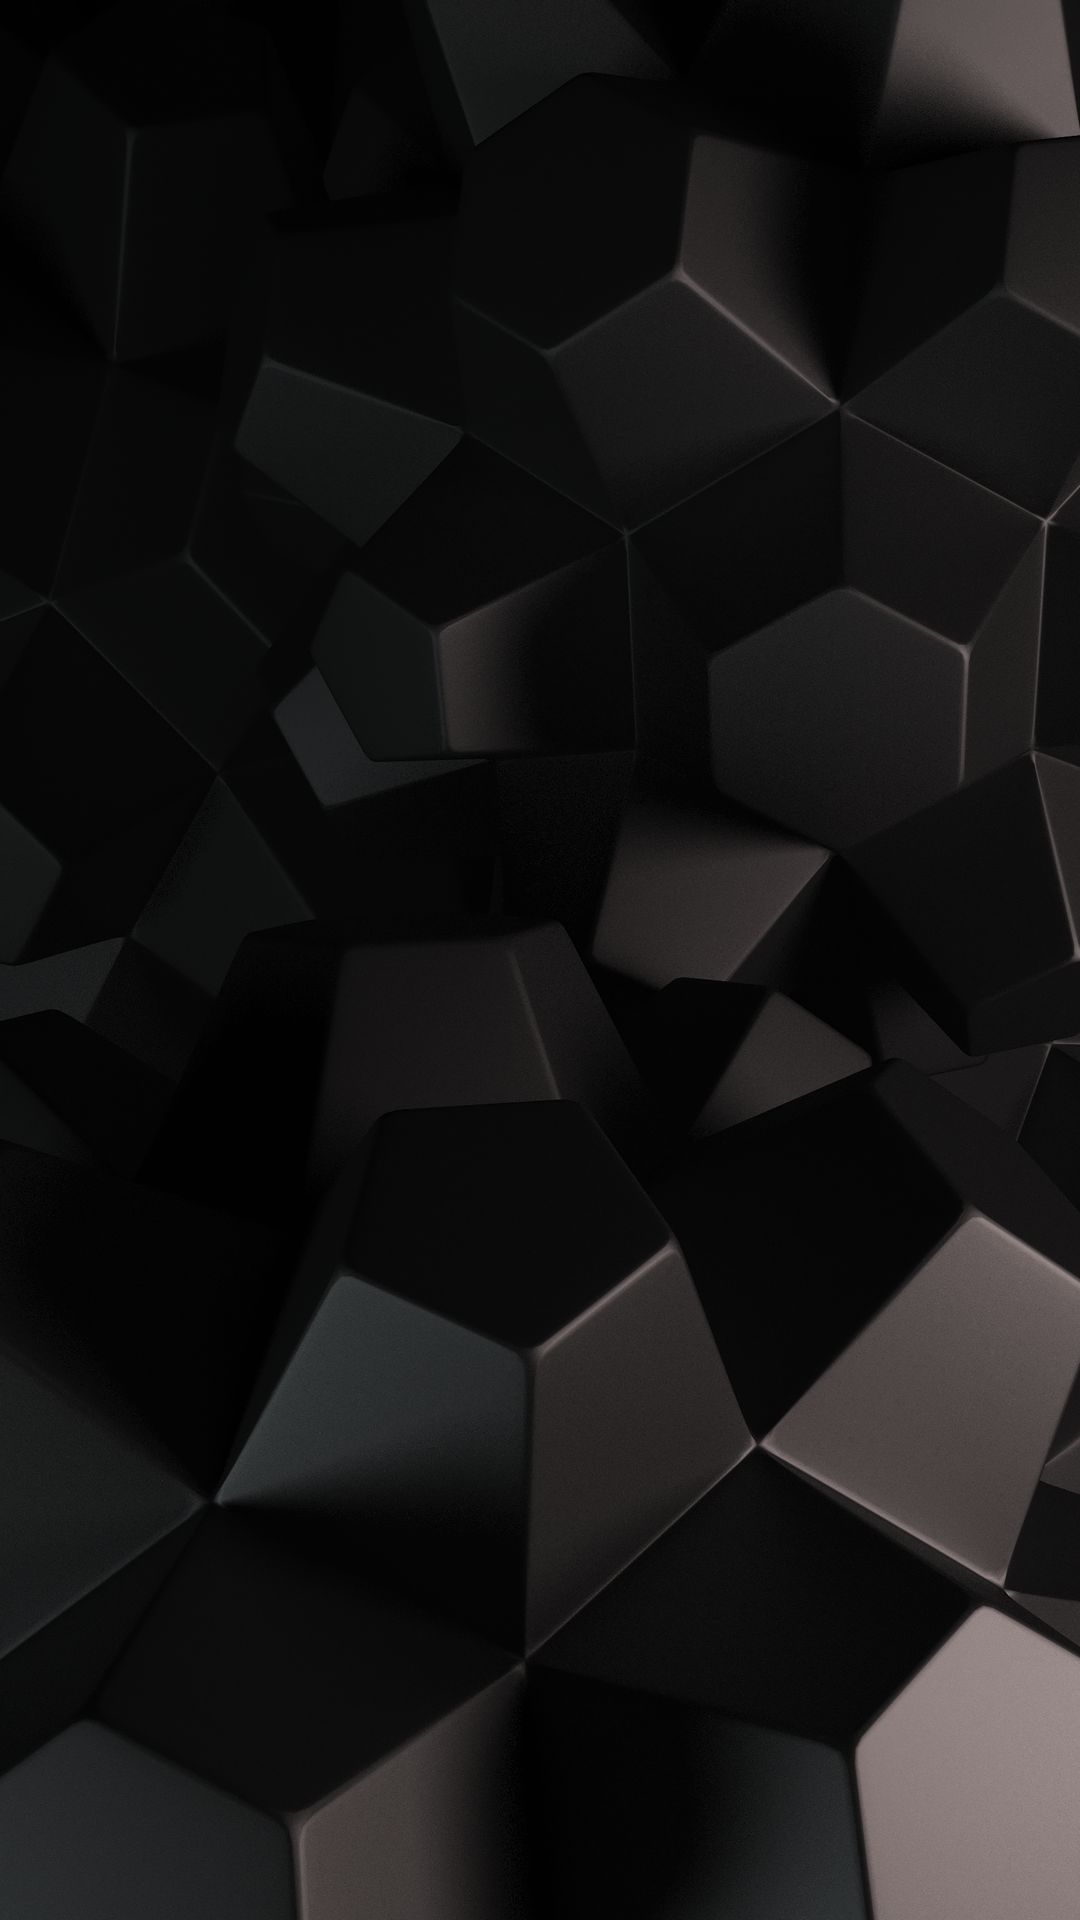 Black abstract htc one wallpaper best htc one wallpapers - Black abstract background ...